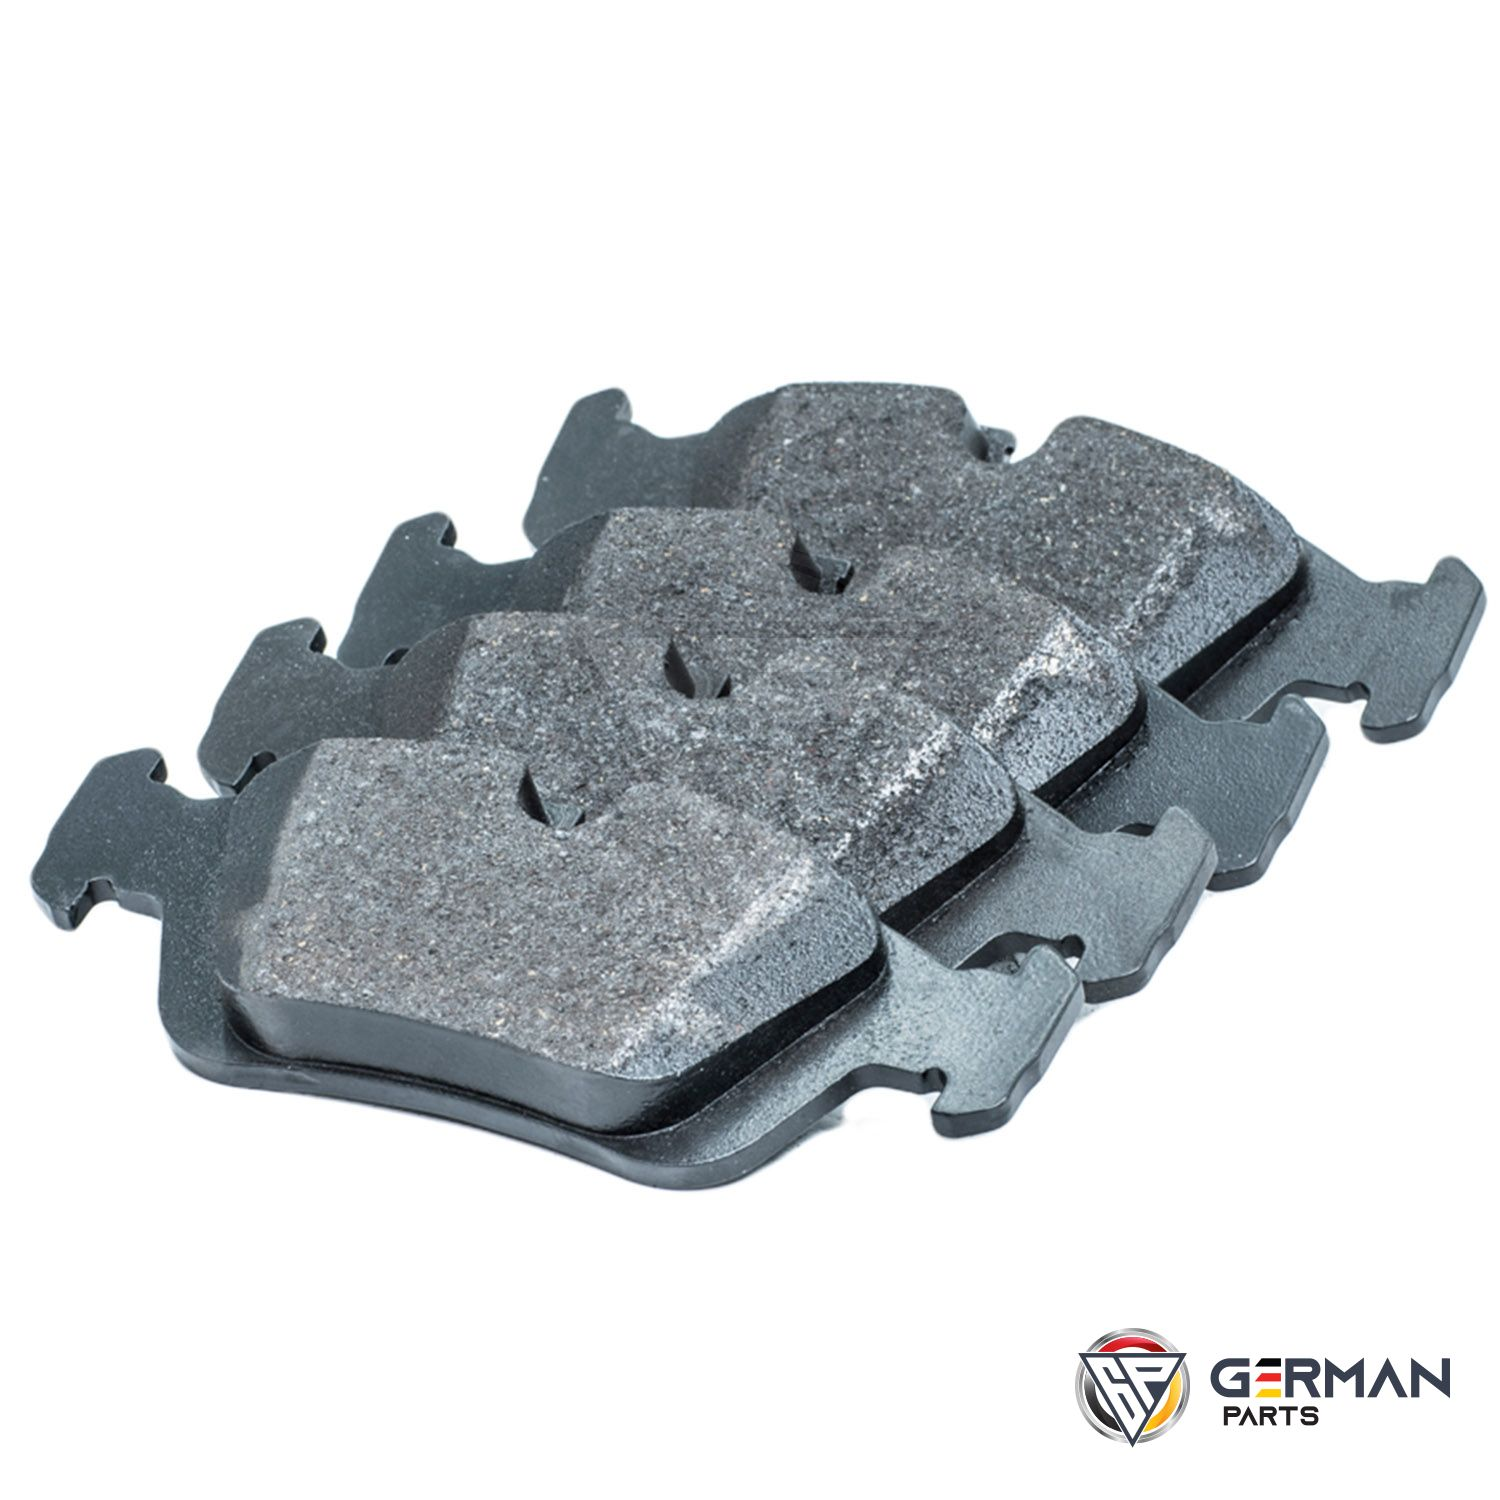 Buy Genuine BMW Front Brake Pad Set 34116761244 - German Parts